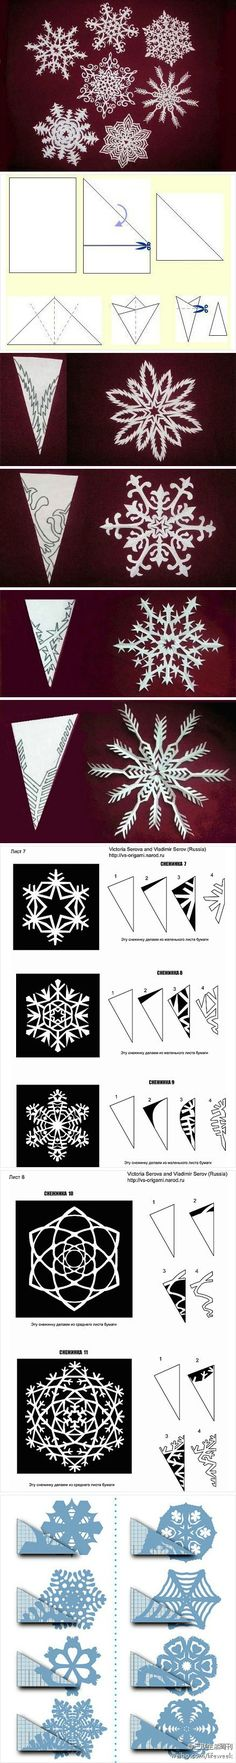 Ideas For Paper Art Diy Kirigami Decoration Origami Paper, Diy Paper, Paper Art, Paper Crafts, Diy Crafts, Diy Origami, Paper Toys, Winter Christmas, Christmas Holidays